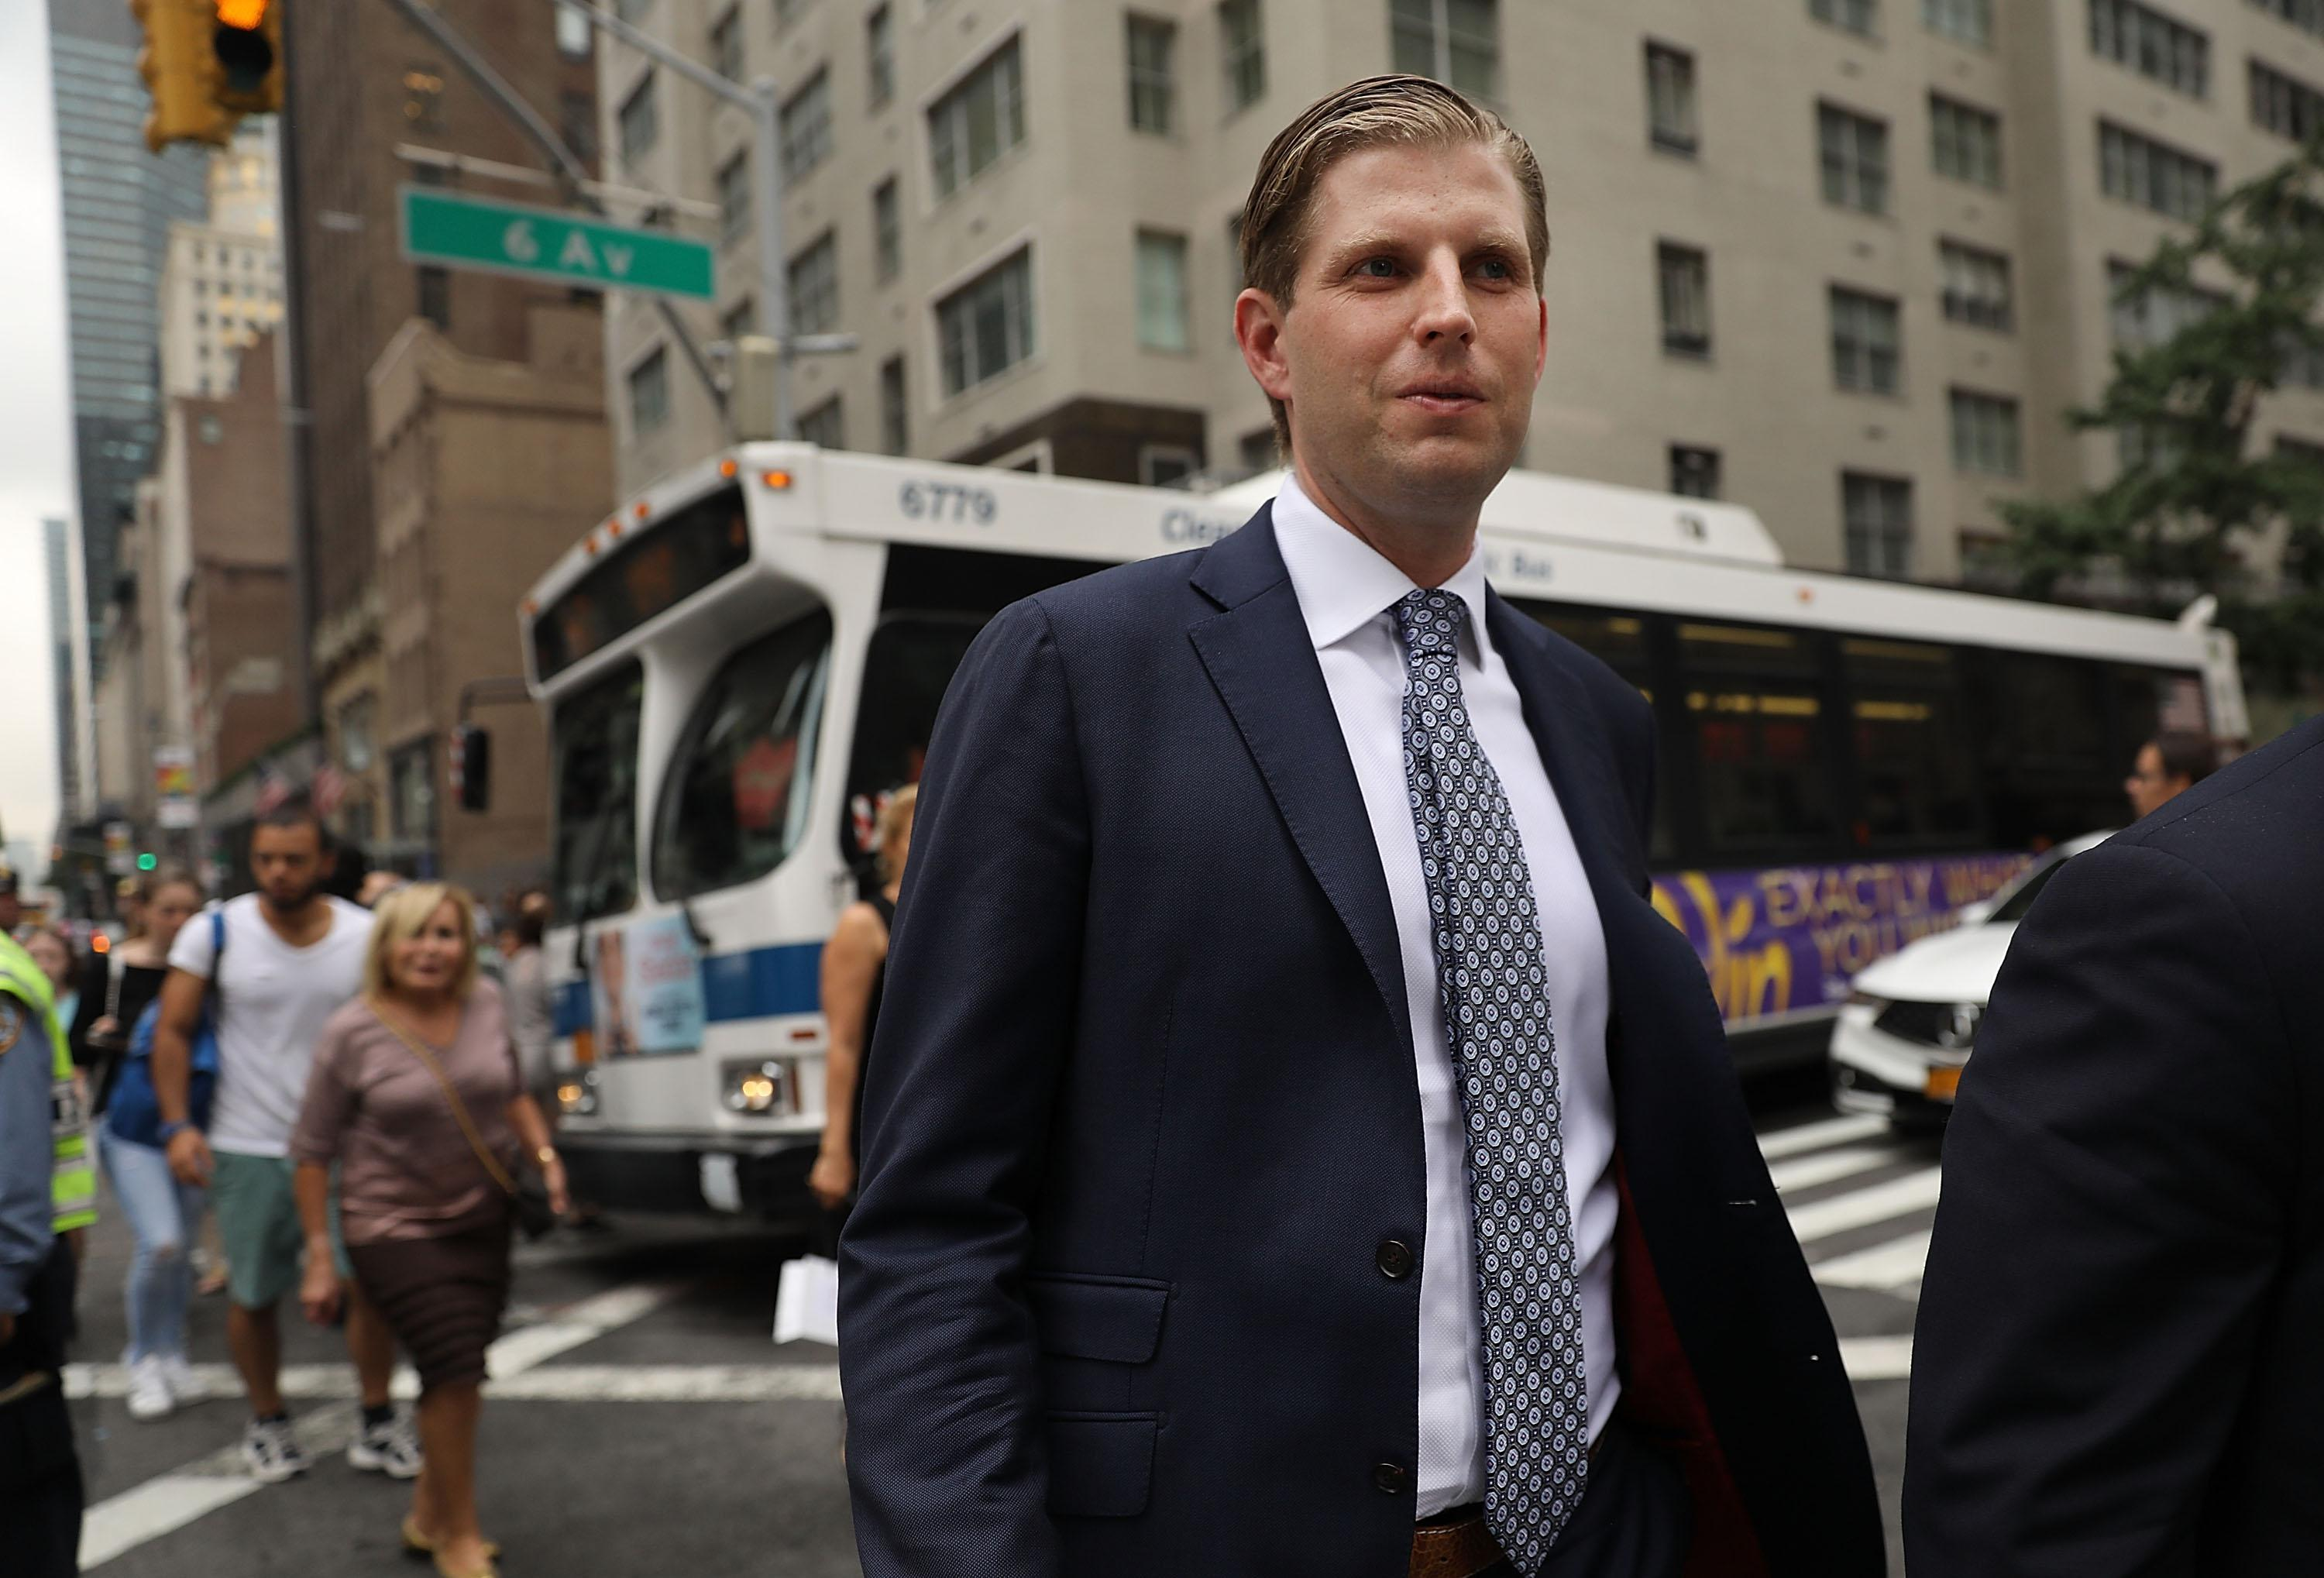 Eric Trump, son of President Donald Trump, walks outside of Trump Tower on August 15, 2017 in New York City. Security throughout the area is high as President Trump arrived at his residence in the tower last night, his first visit back to his apartment since his inauguration.